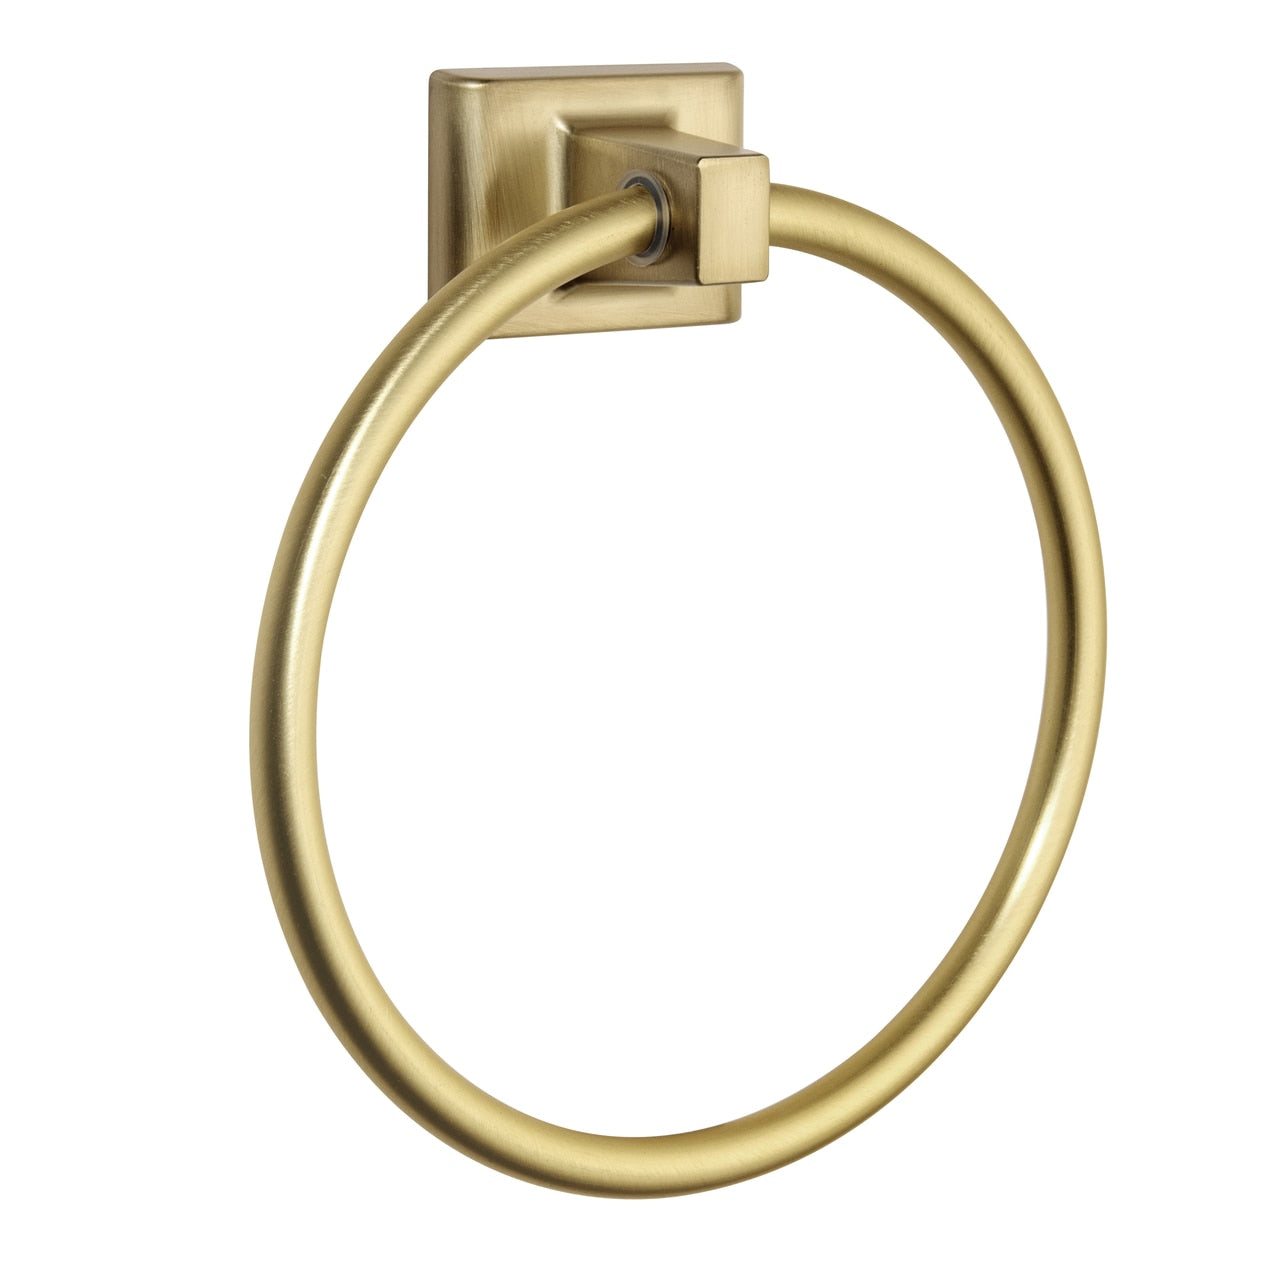 Designers Impressions Eclipse Series Brushed Brass Towel Ring